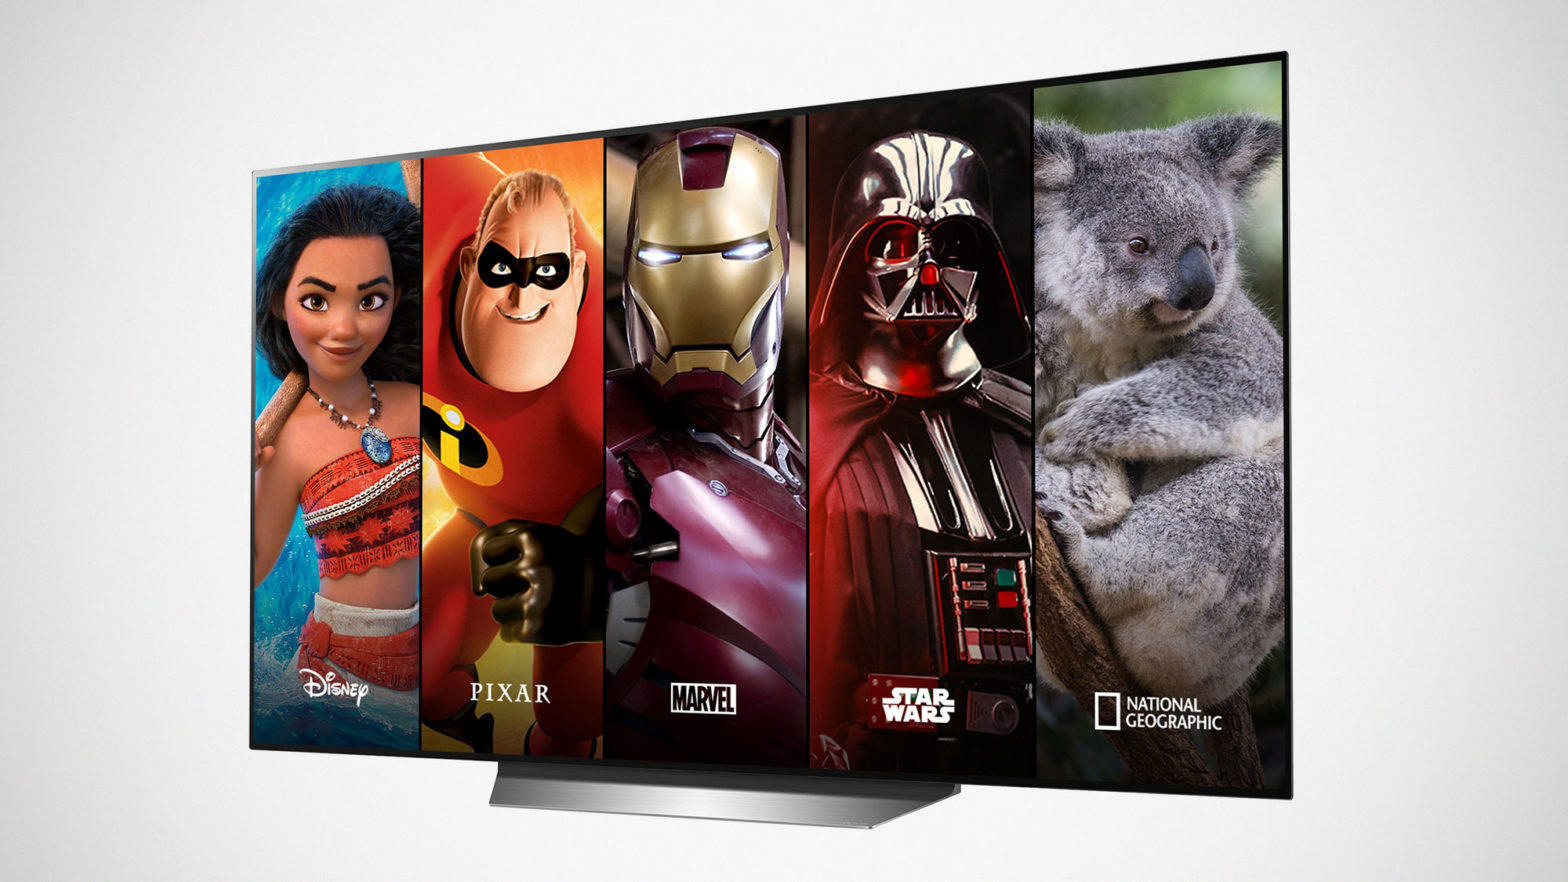 Disney+ Arrives To LG Smat TVs